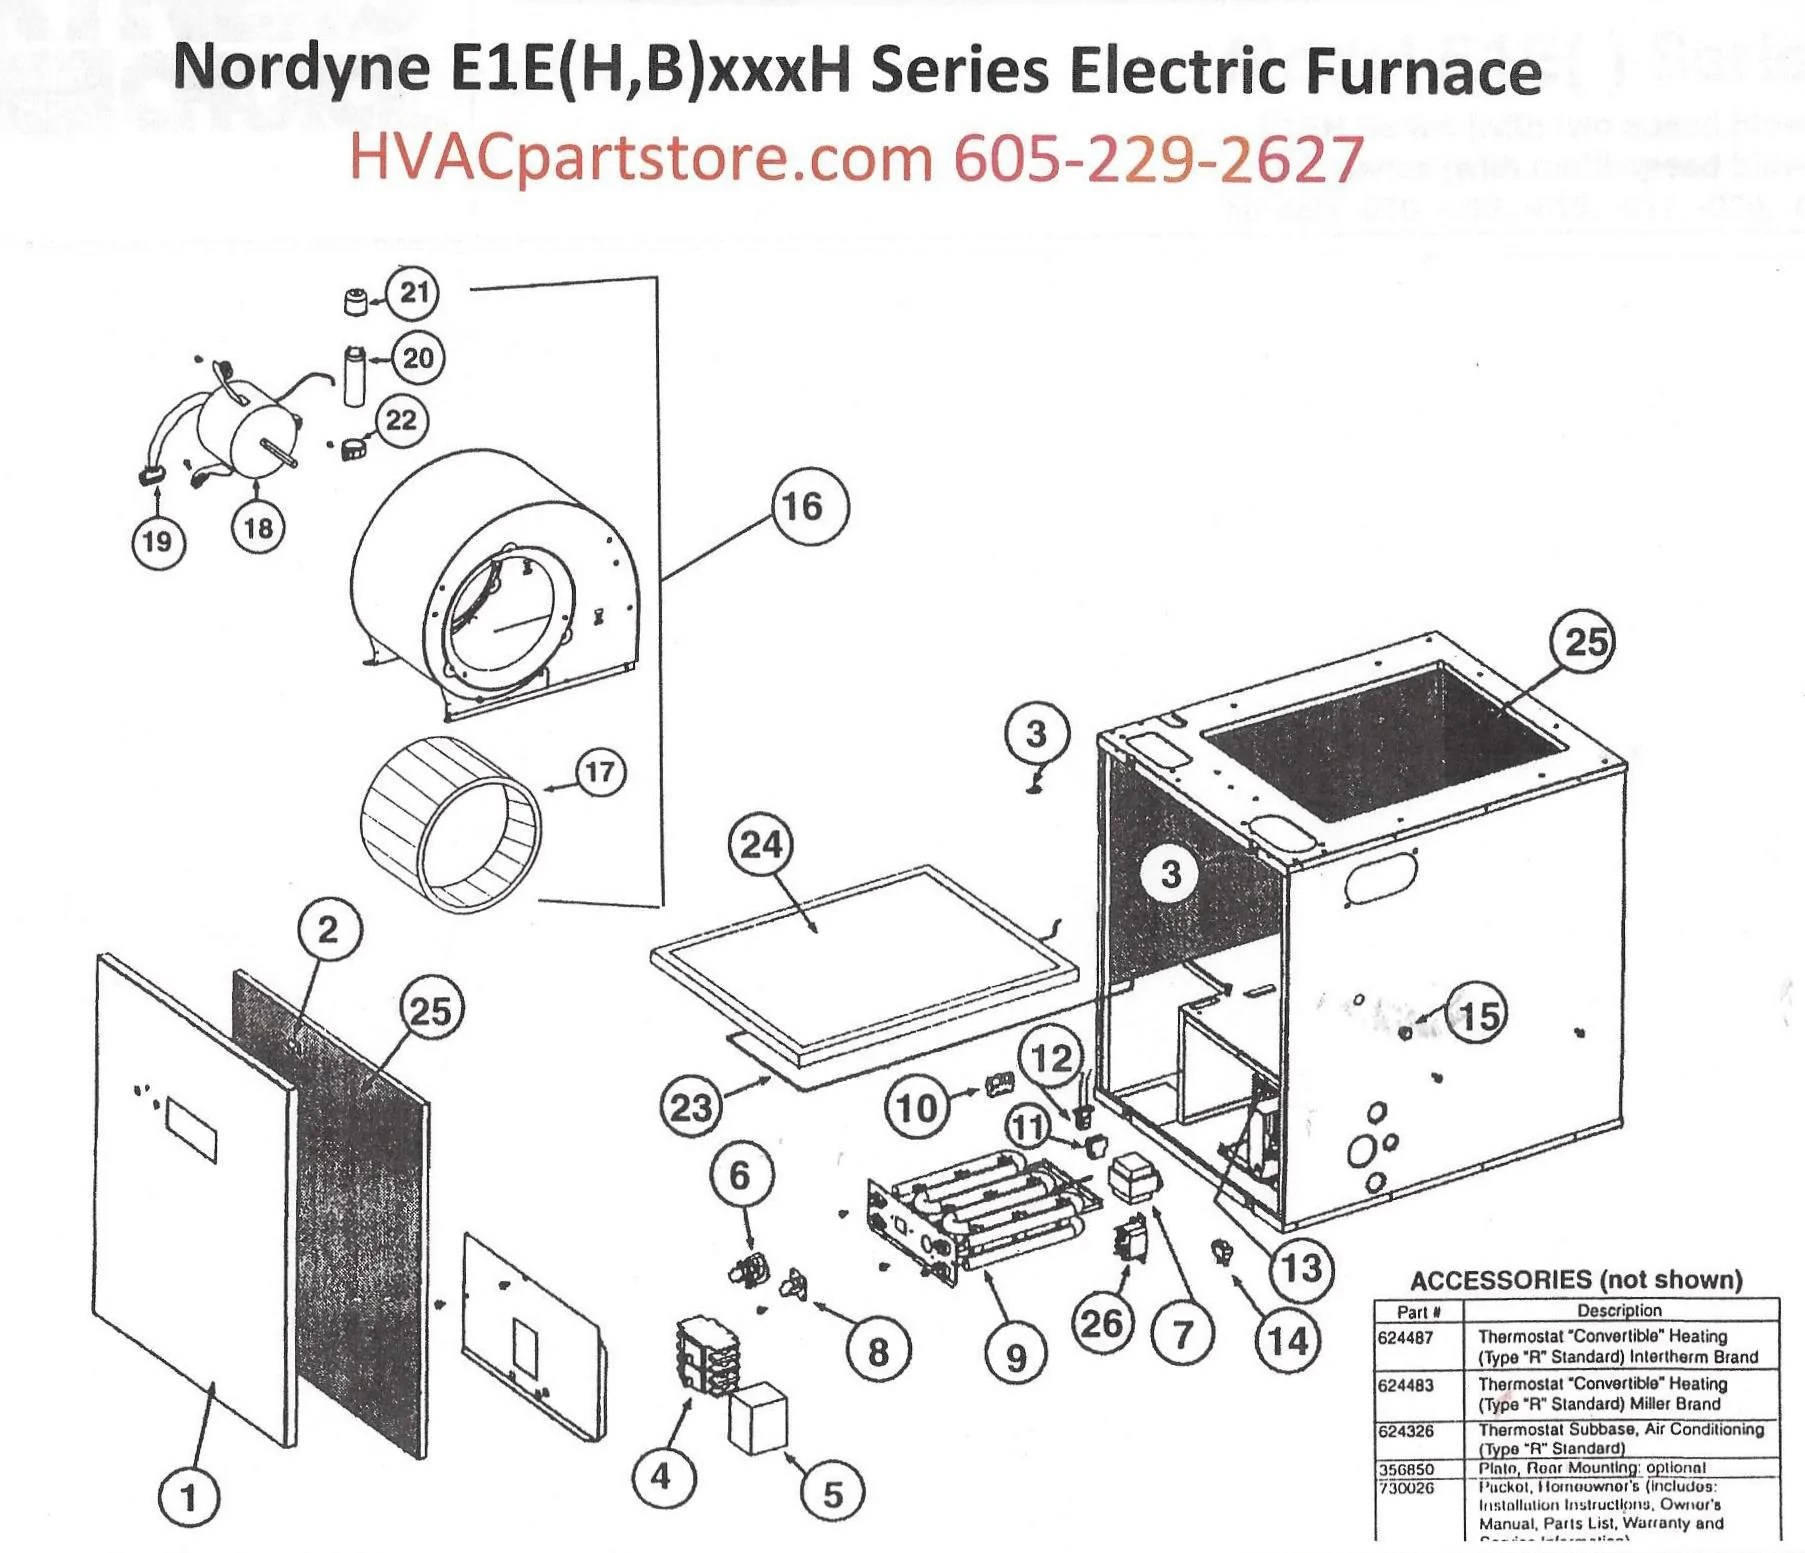 E1EH017H Nordyne Electric Furnace Parts – HVACpartstore